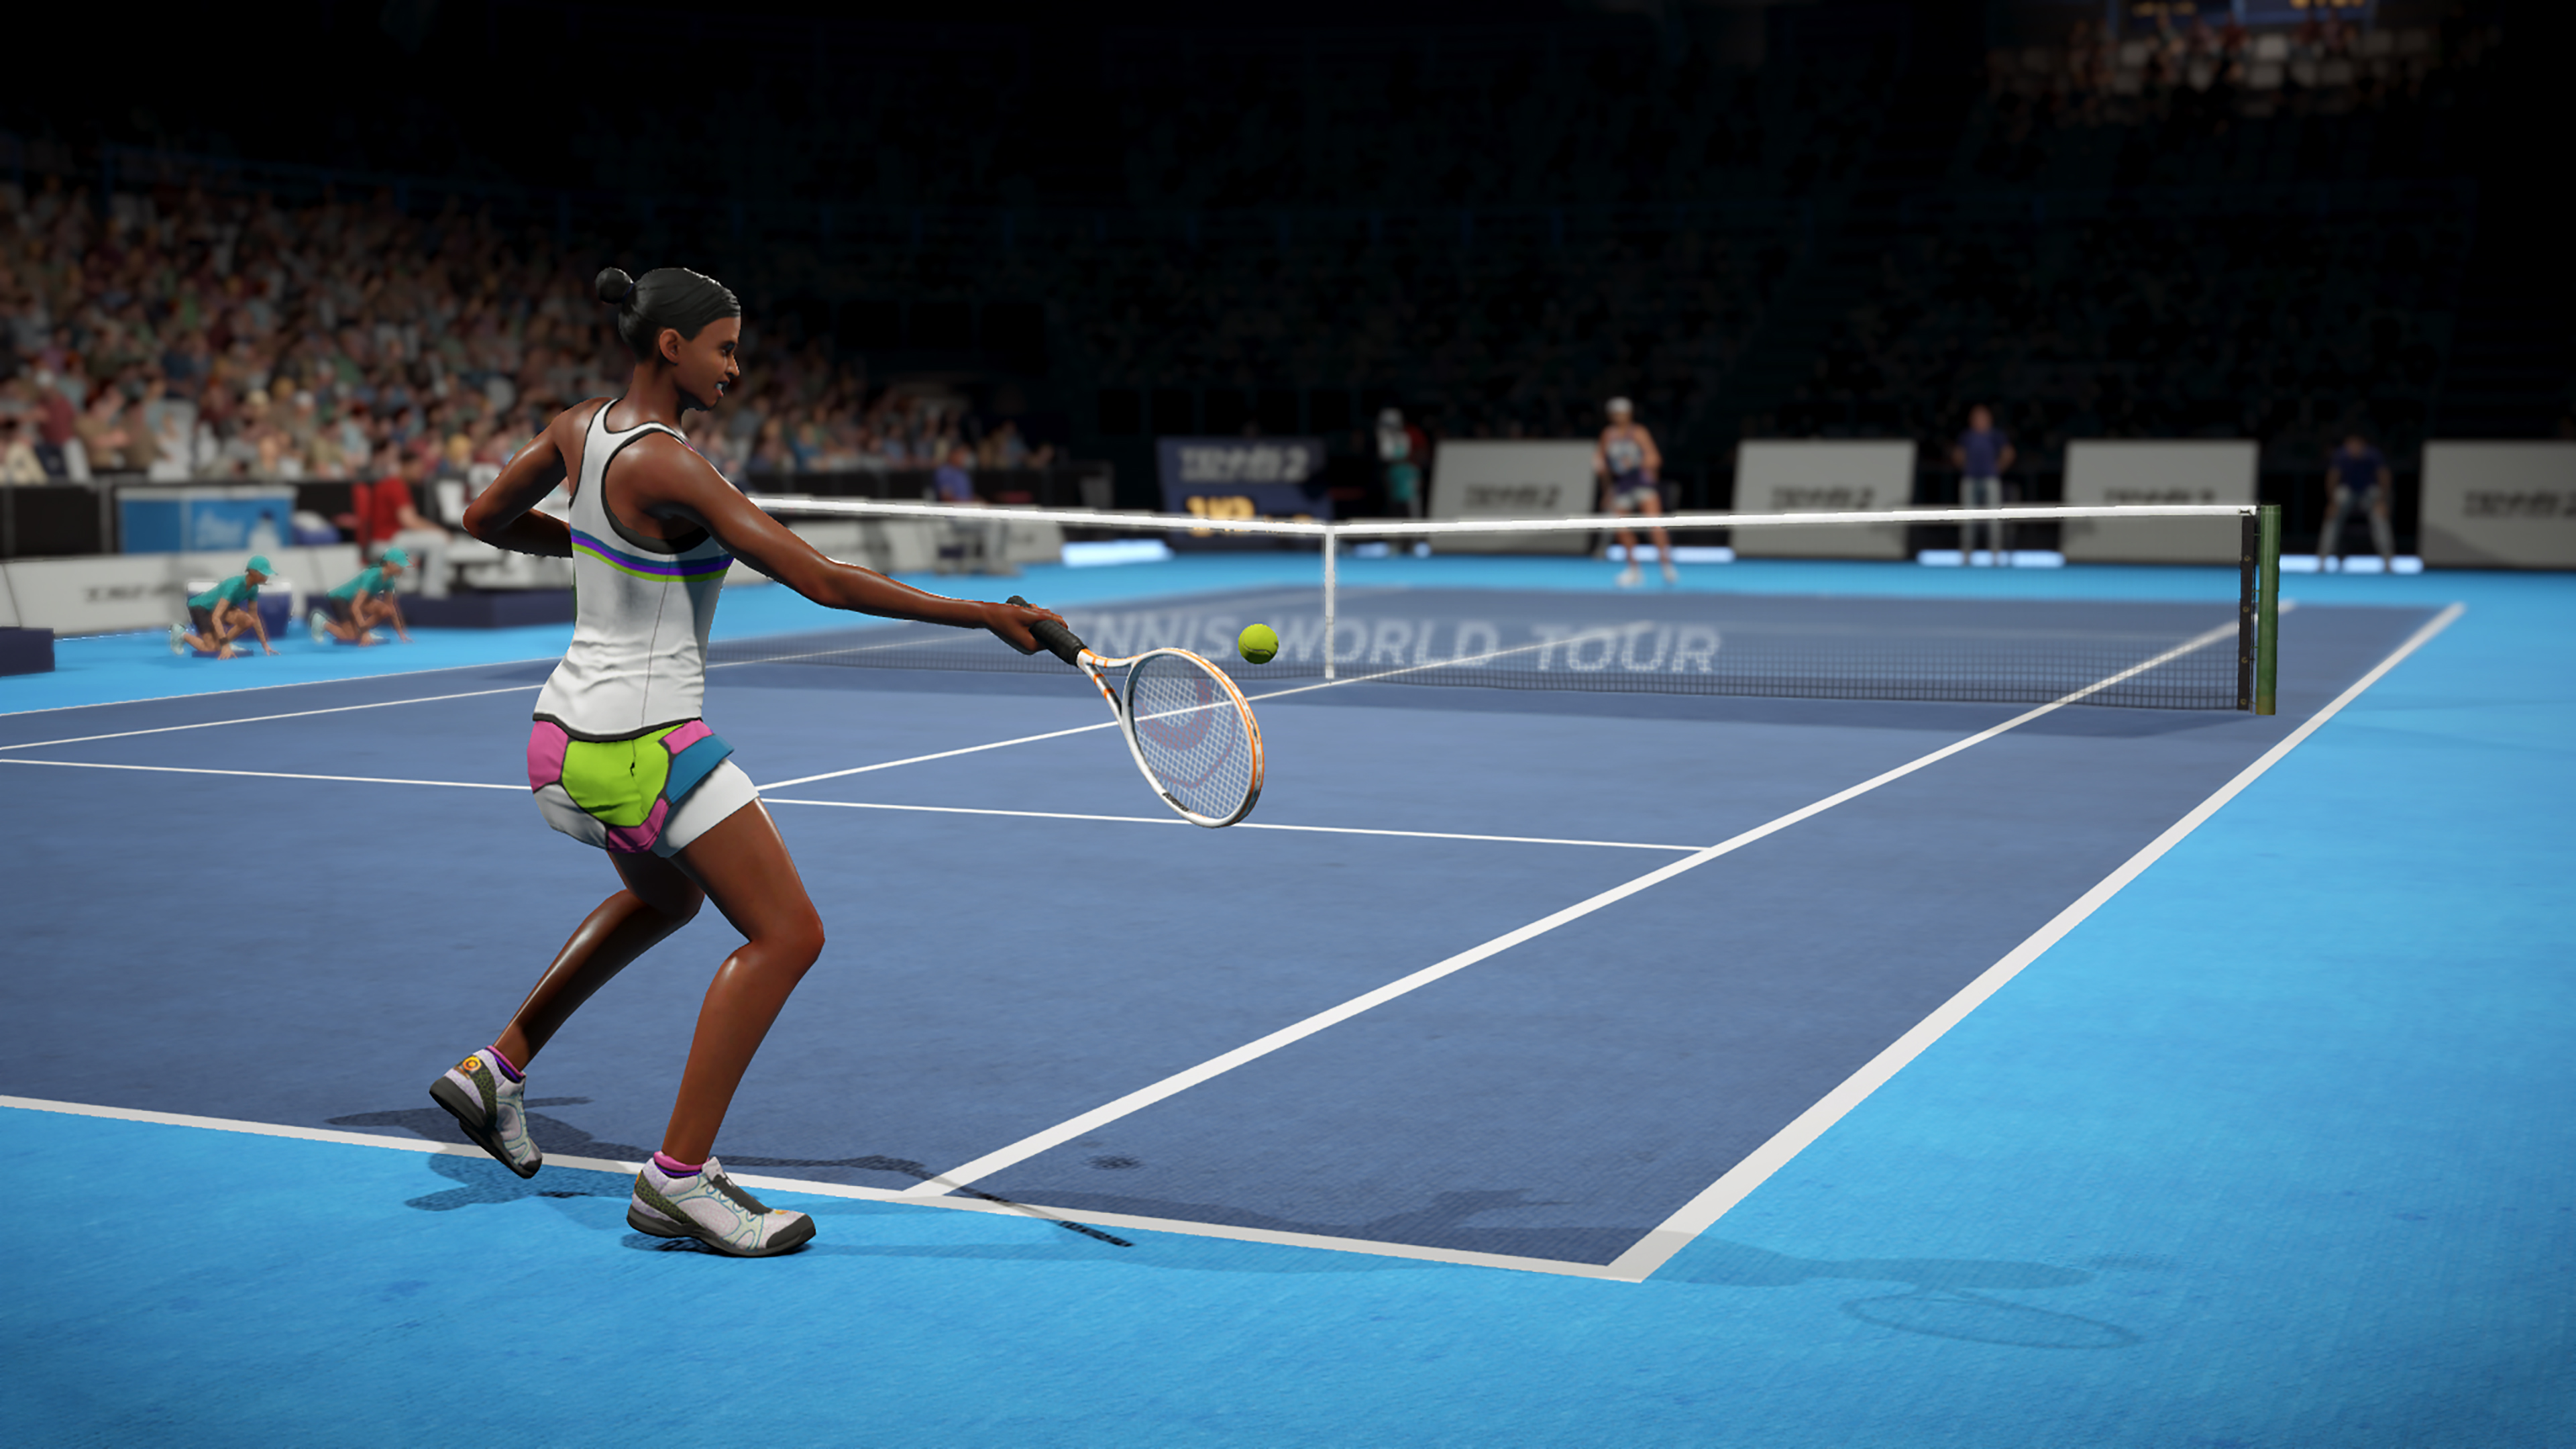 Tennis World Tour 2 Pre-Order for PS4 — buy cheaper in official store •  PSprices Emirates